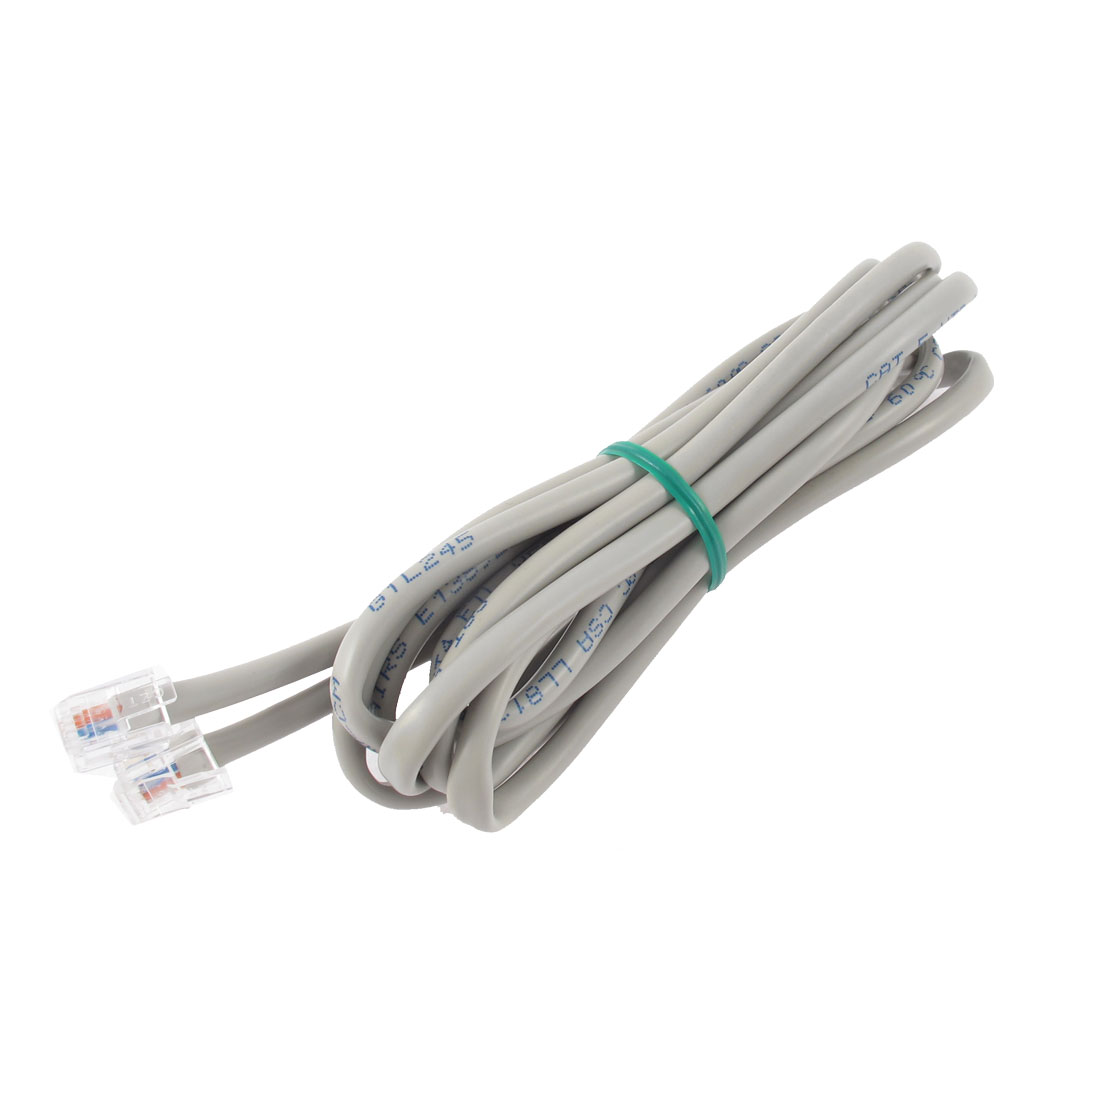 6.5Ft Length 6P4C RJ11 Telephone Extension Fax Modem Cable Line Gray